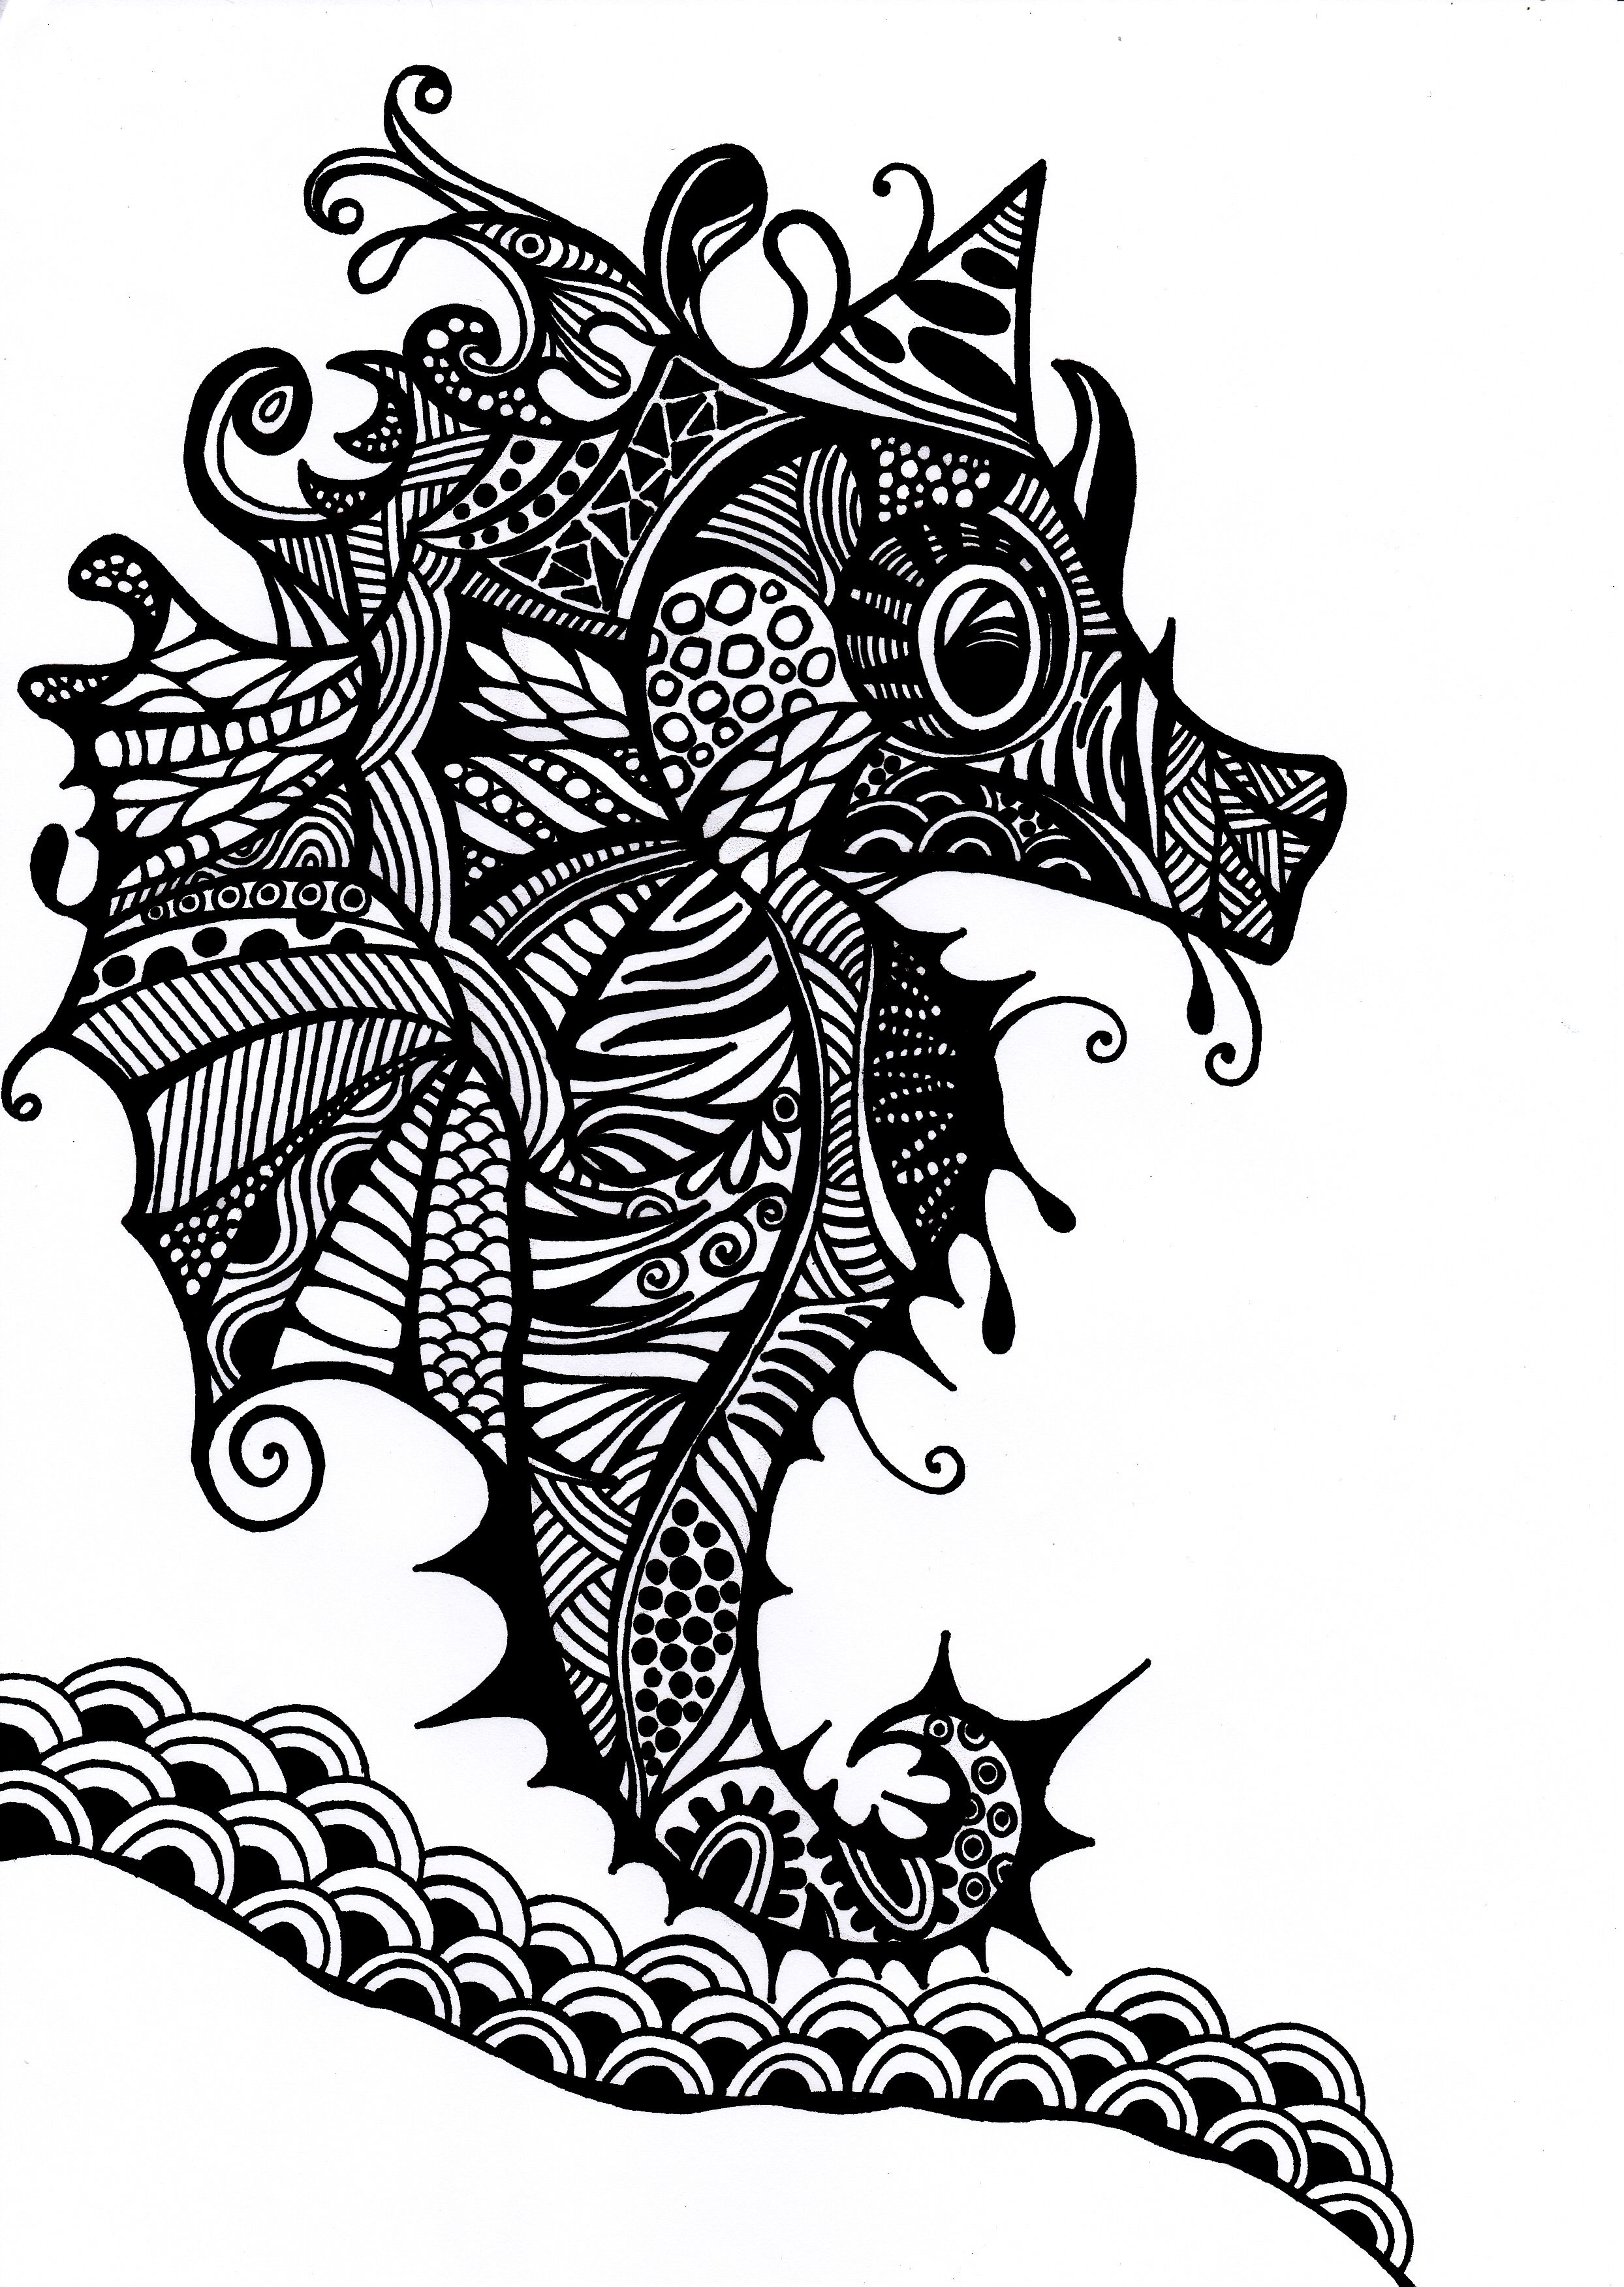 Black and white drawing using pen. sea seahorse black